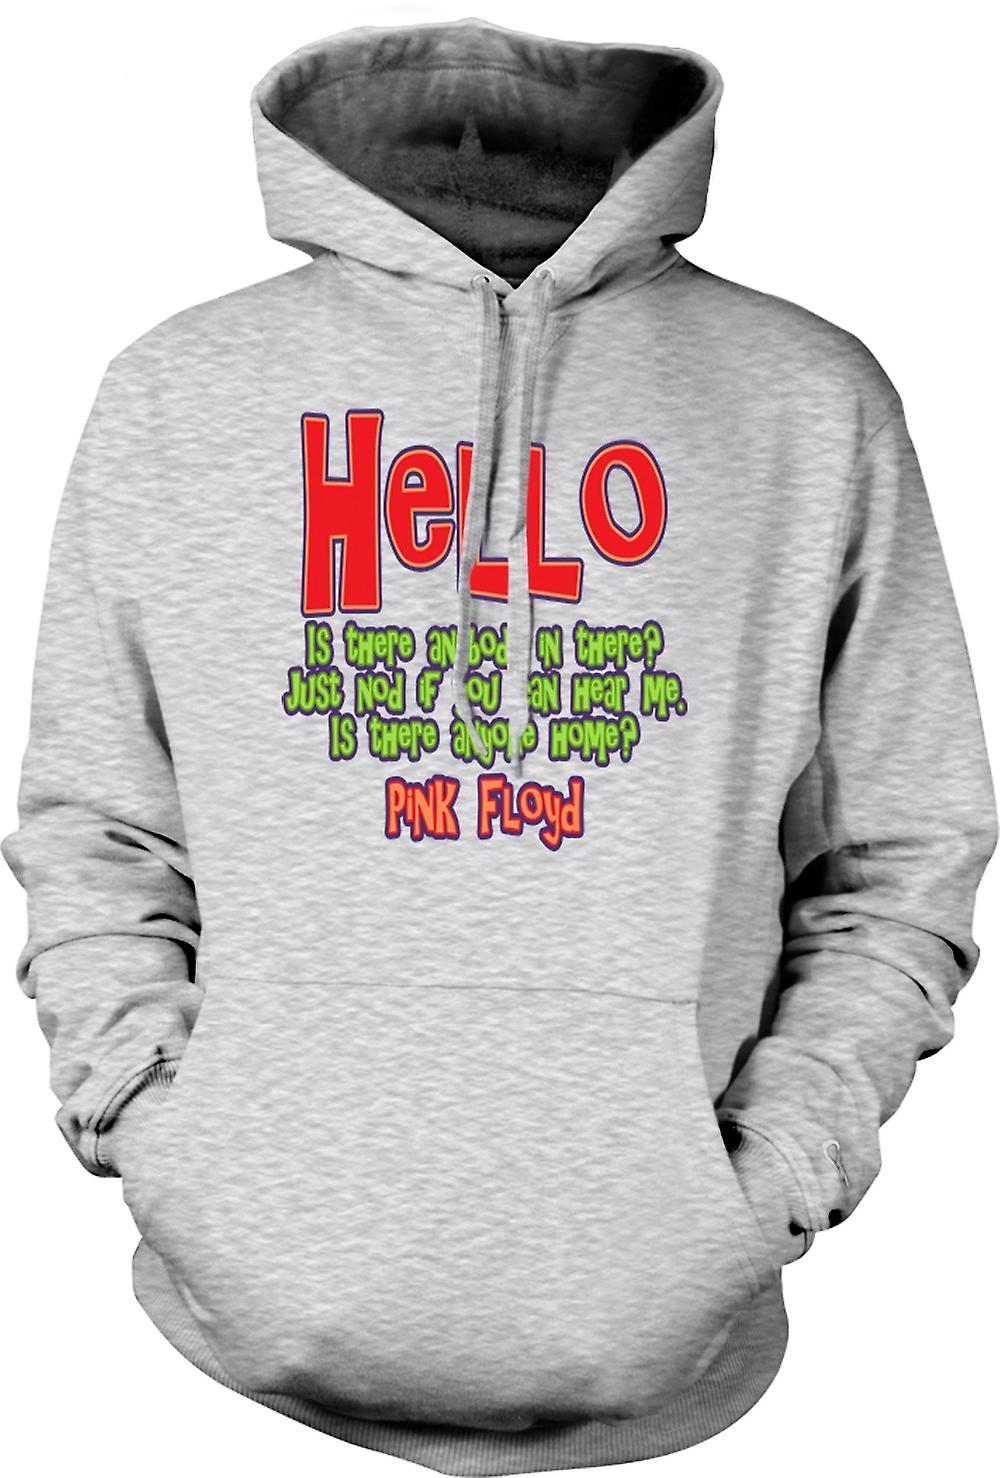 Mens Hoodie - Hello Is There Anybody In There? Quote - Pink Floyd